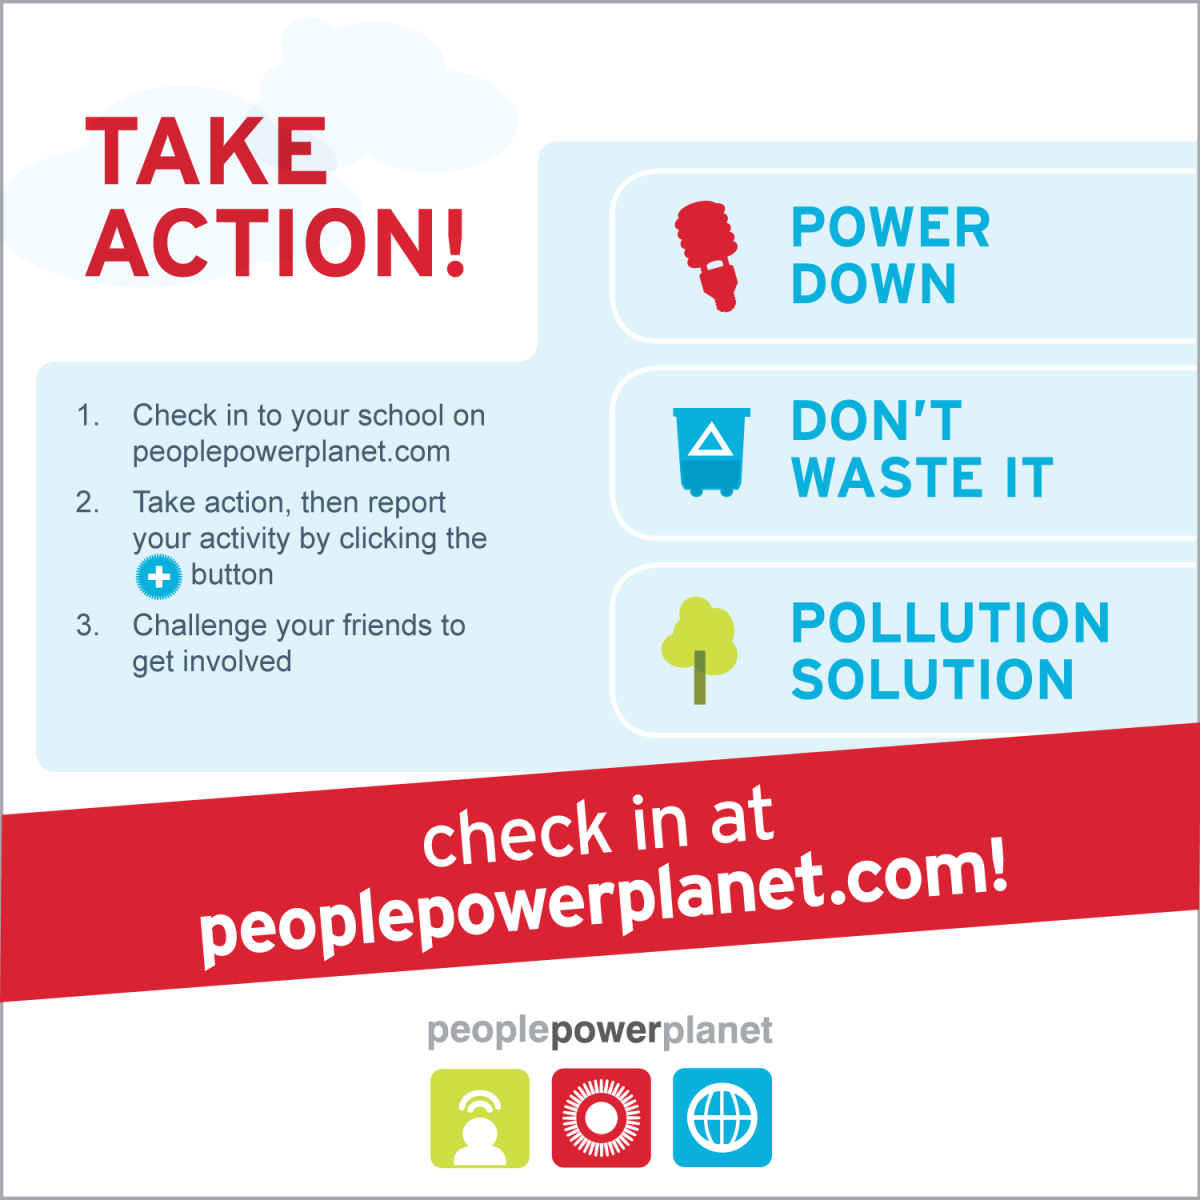 People Power Planet